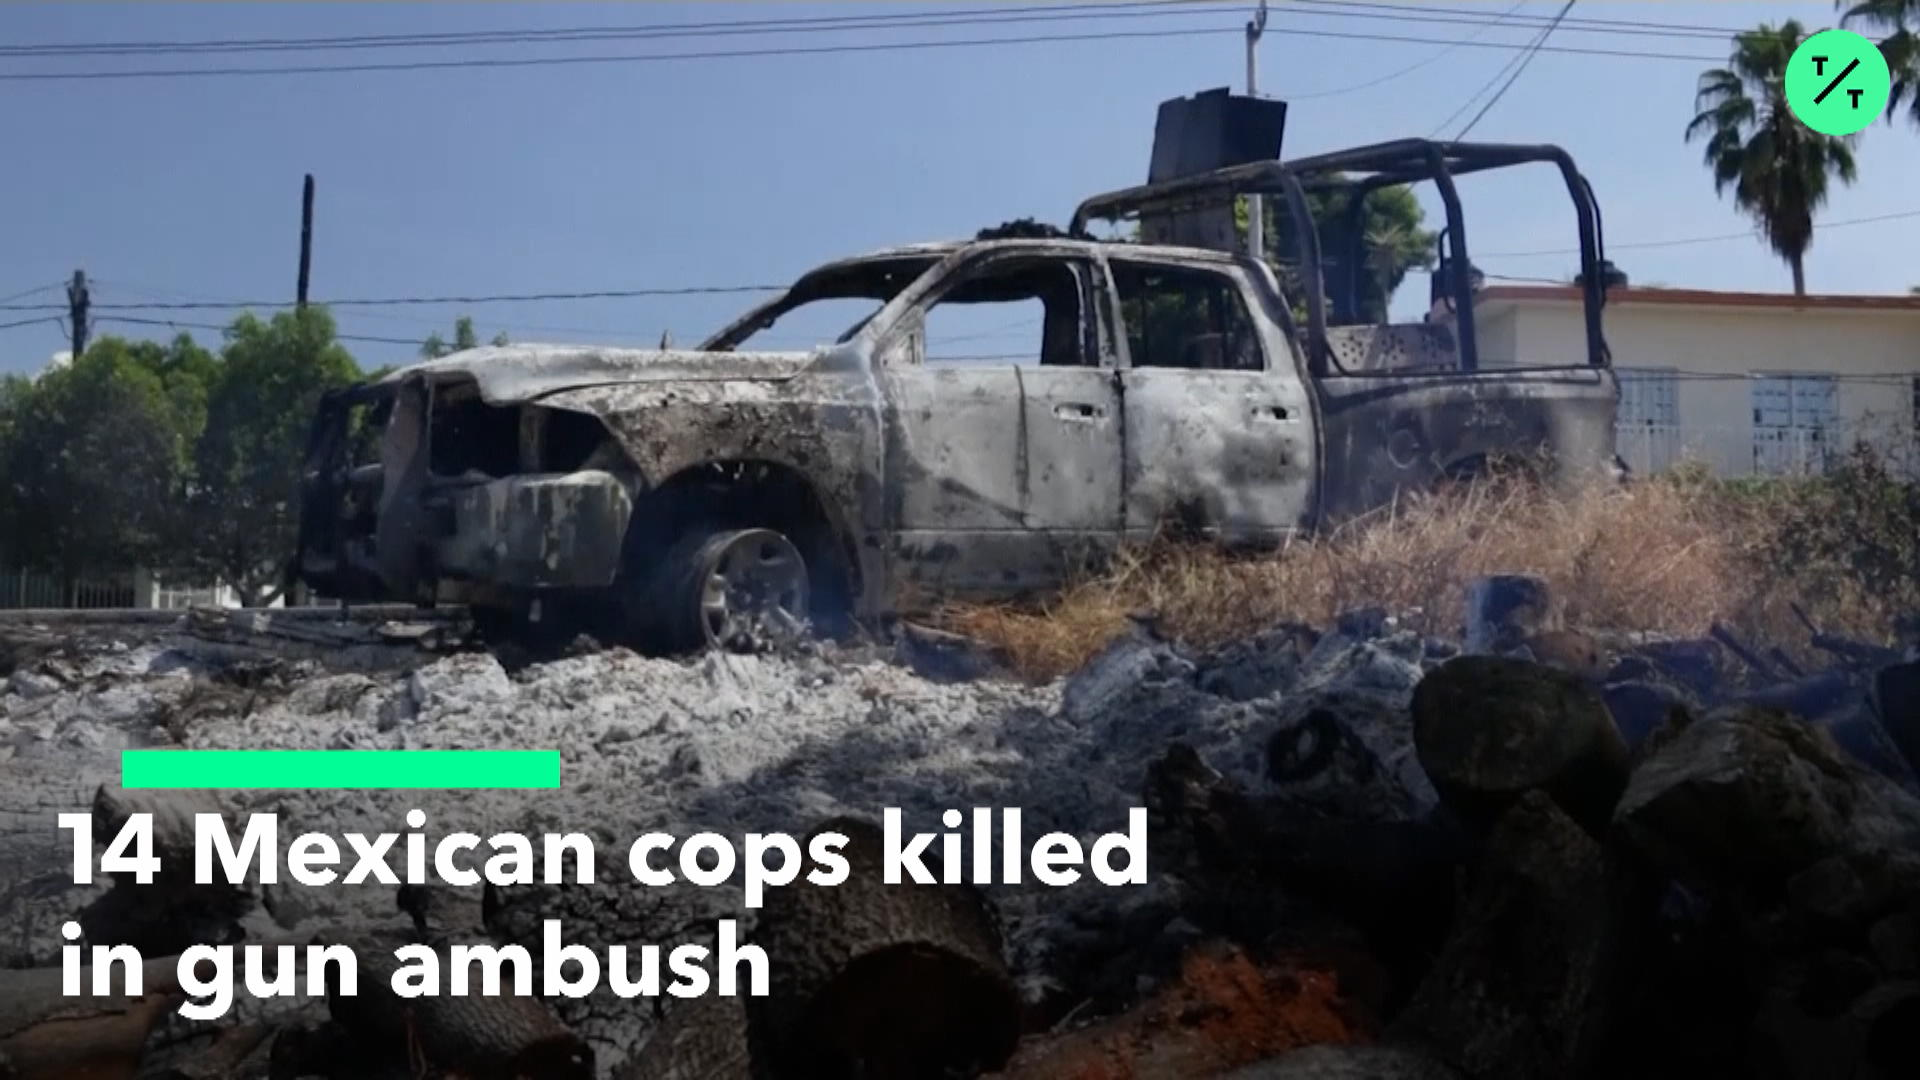 14 Mexican Cops Killed In Gun Ambush